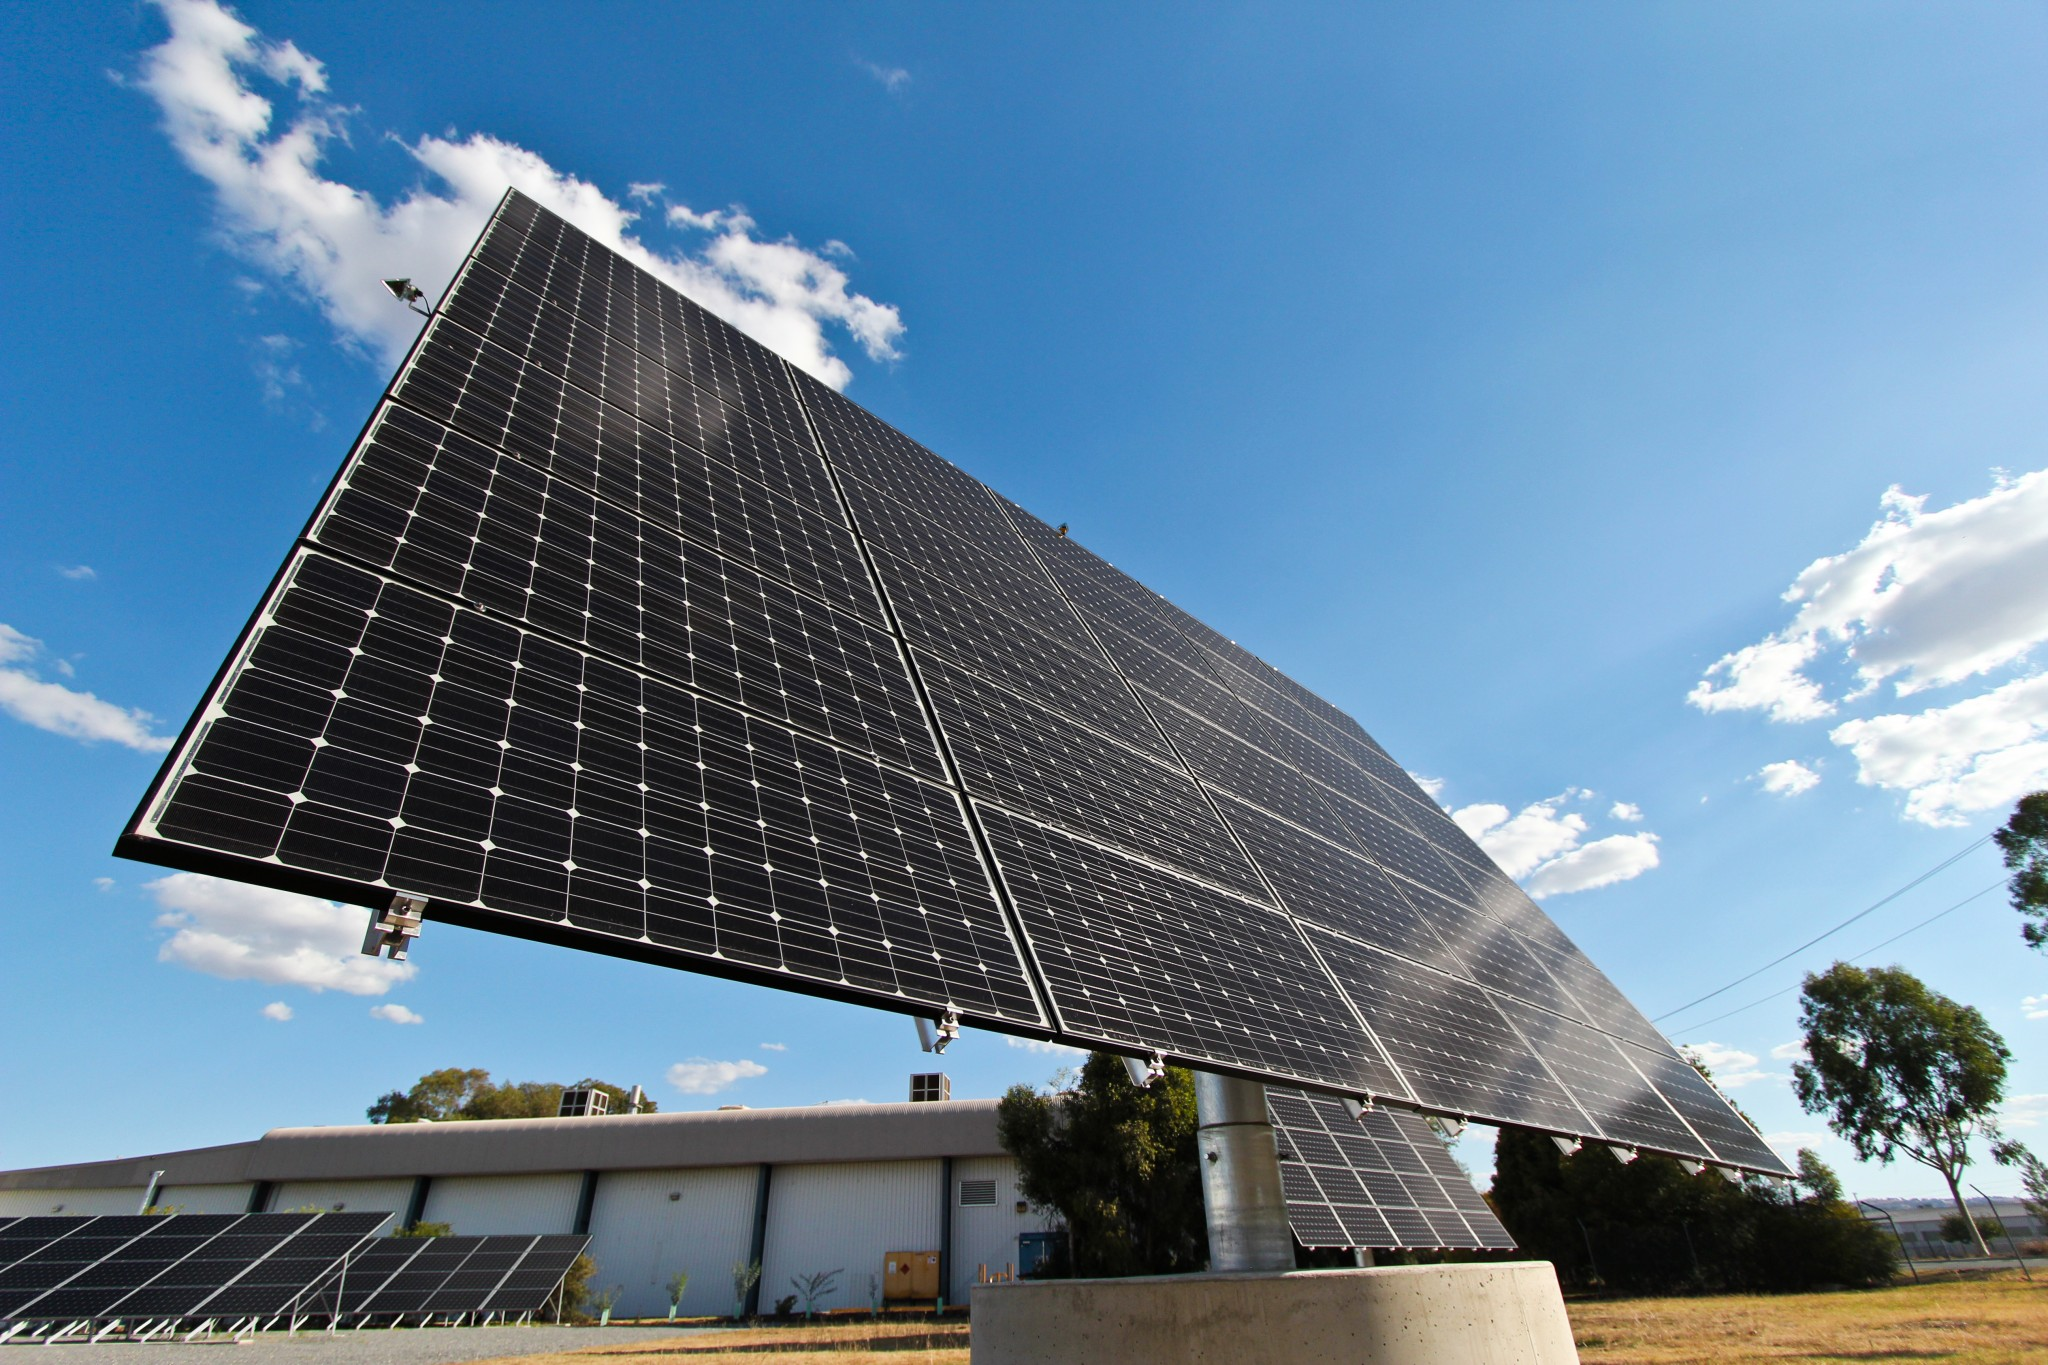 solar-tracking-system-1-glynncorp-electrical